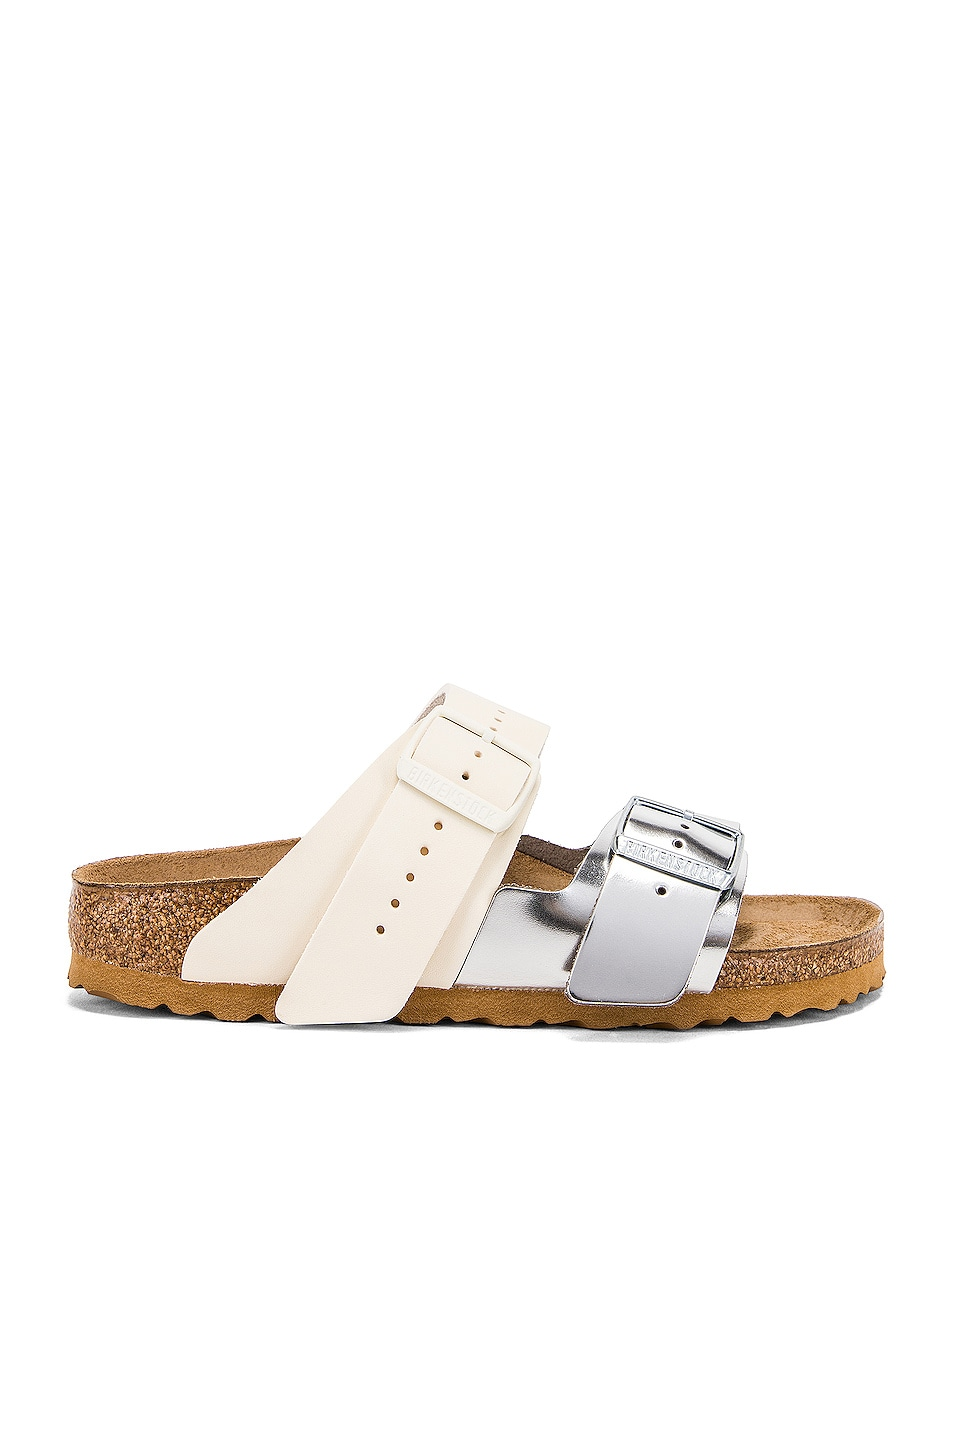 Image 1 of Rick Owens x Birkenstock Combo Arizona Sandal in Oyster & Silver